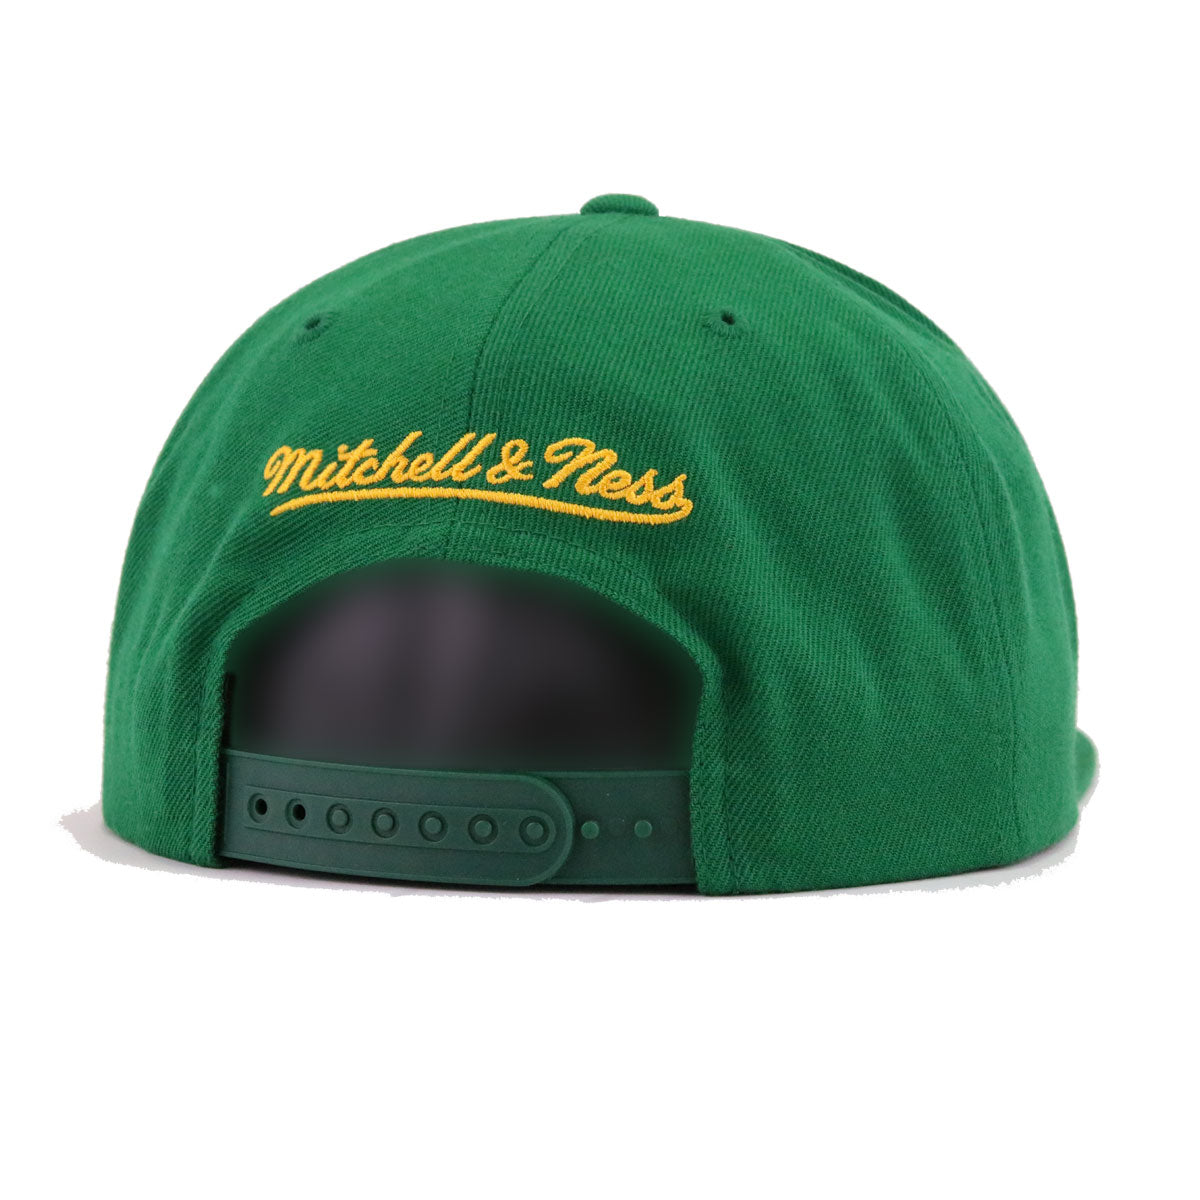 Seattle Supersonics Kelly Green Hardwood Classic Mitchell and Ness Snapback